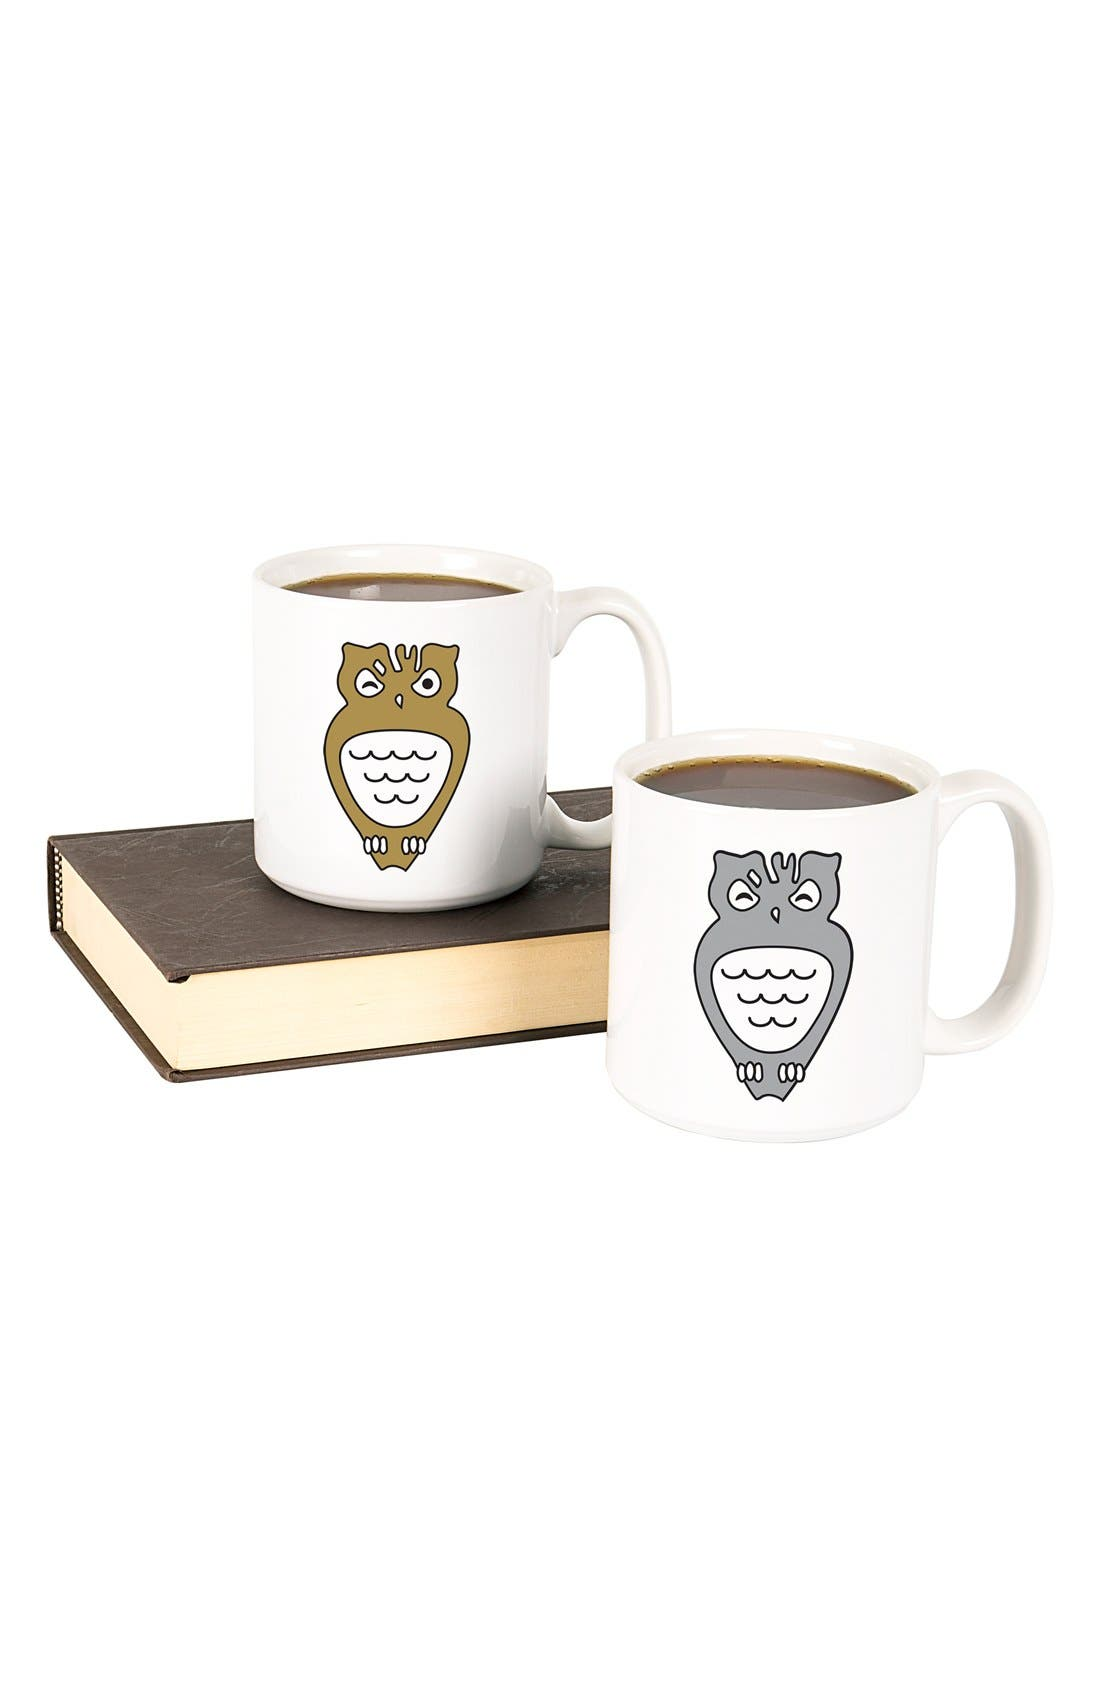 Cathy's Concepts 'Owl' Ceramic Coffee Mugs (Set of 2)